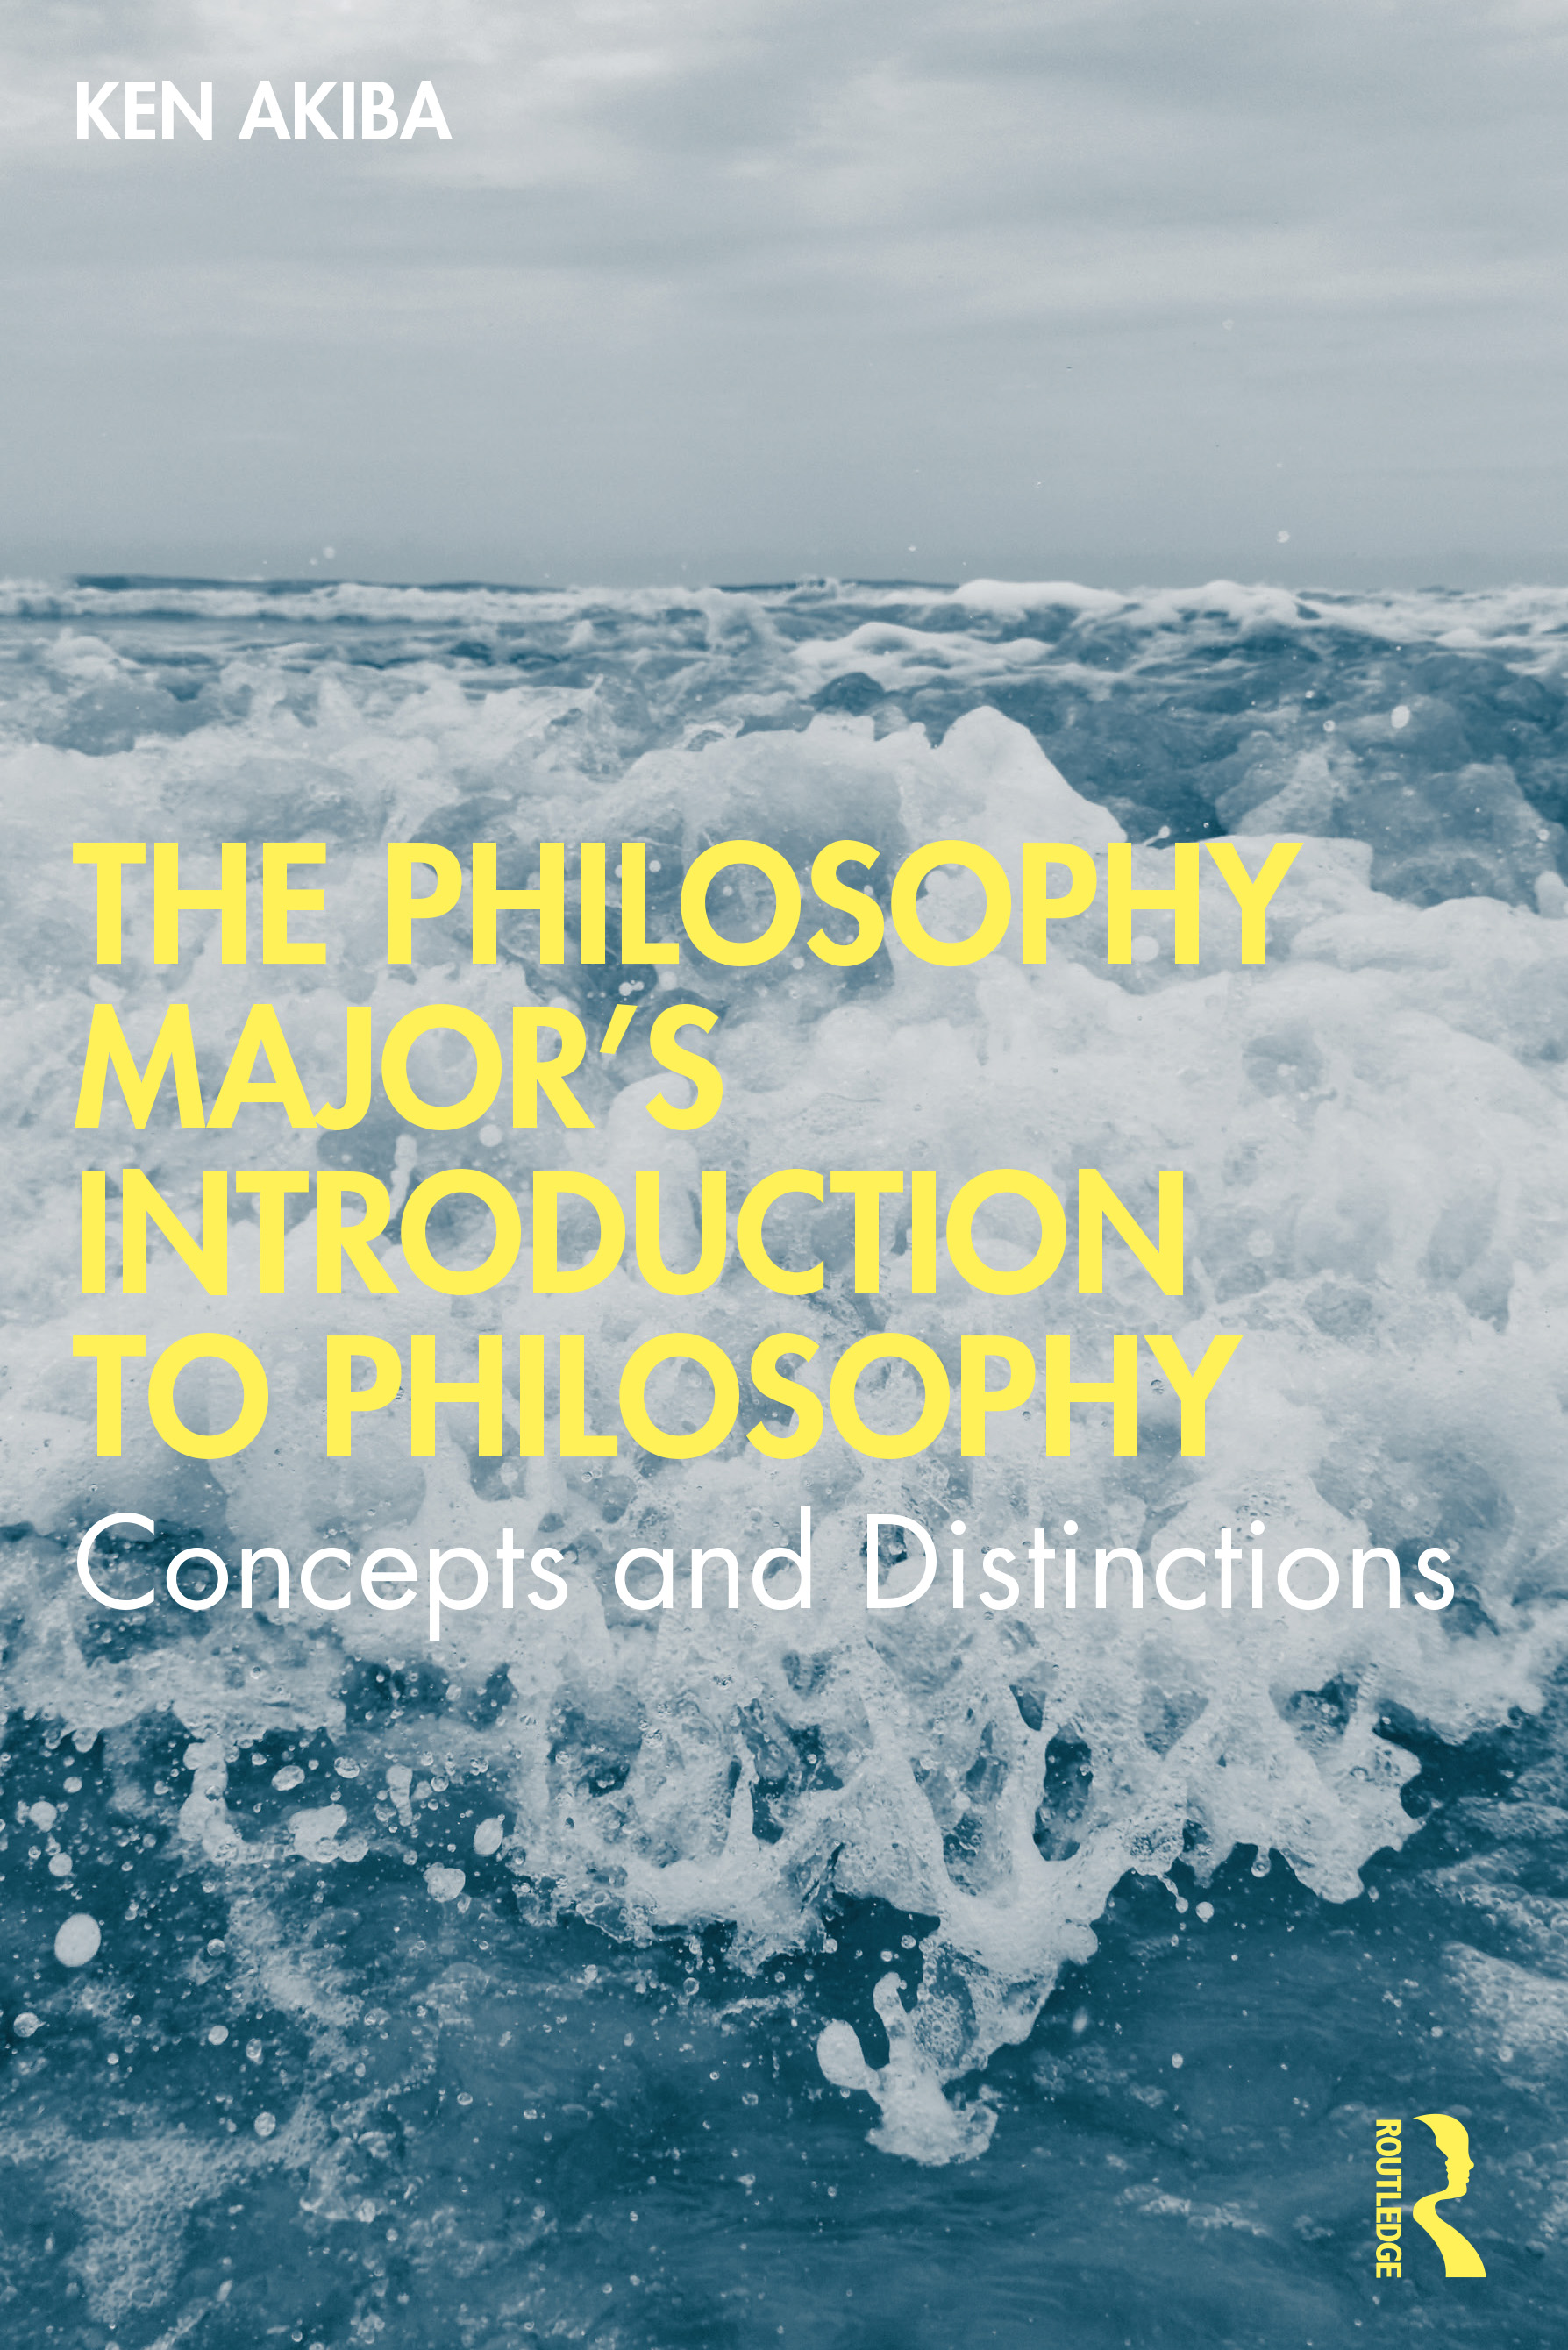 The Philosophy Major's Introduction to Philosophy: Concepts and Distinctions book cover